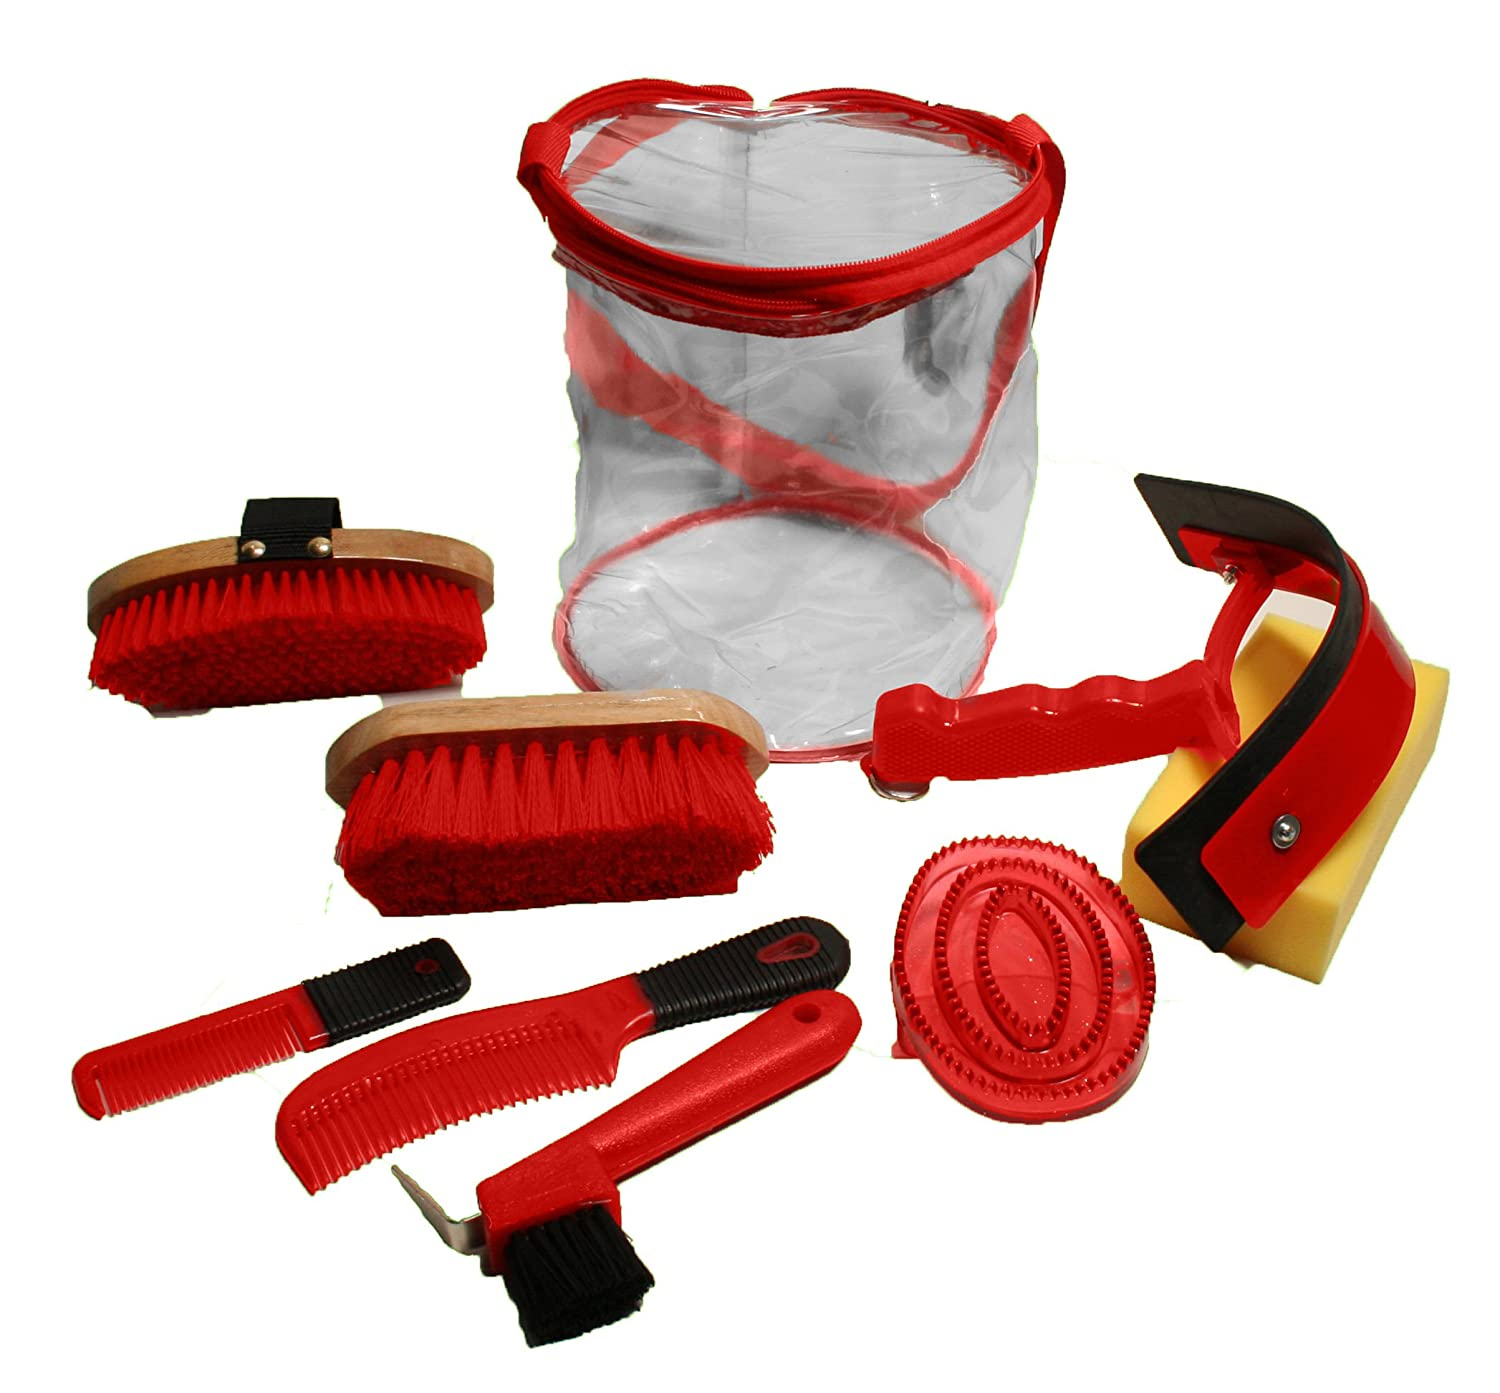 Red Derby Deluxe 9 Item Horse Grooming Kit,   3330 Equestrian Grooming Set, 91-7034RD, Red, Large